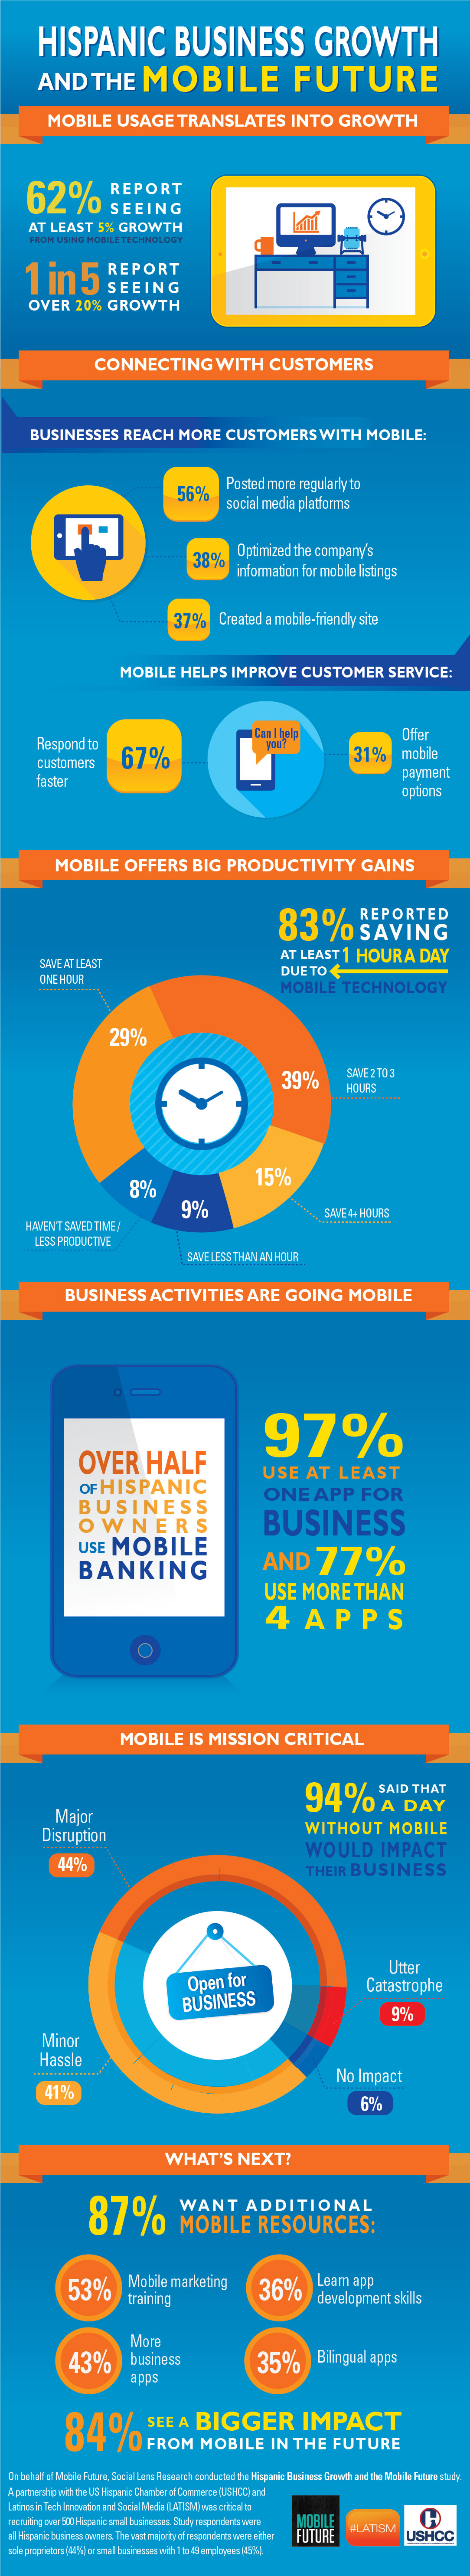 Hispanic Business Growth and the Mobile Future Study Infograpic